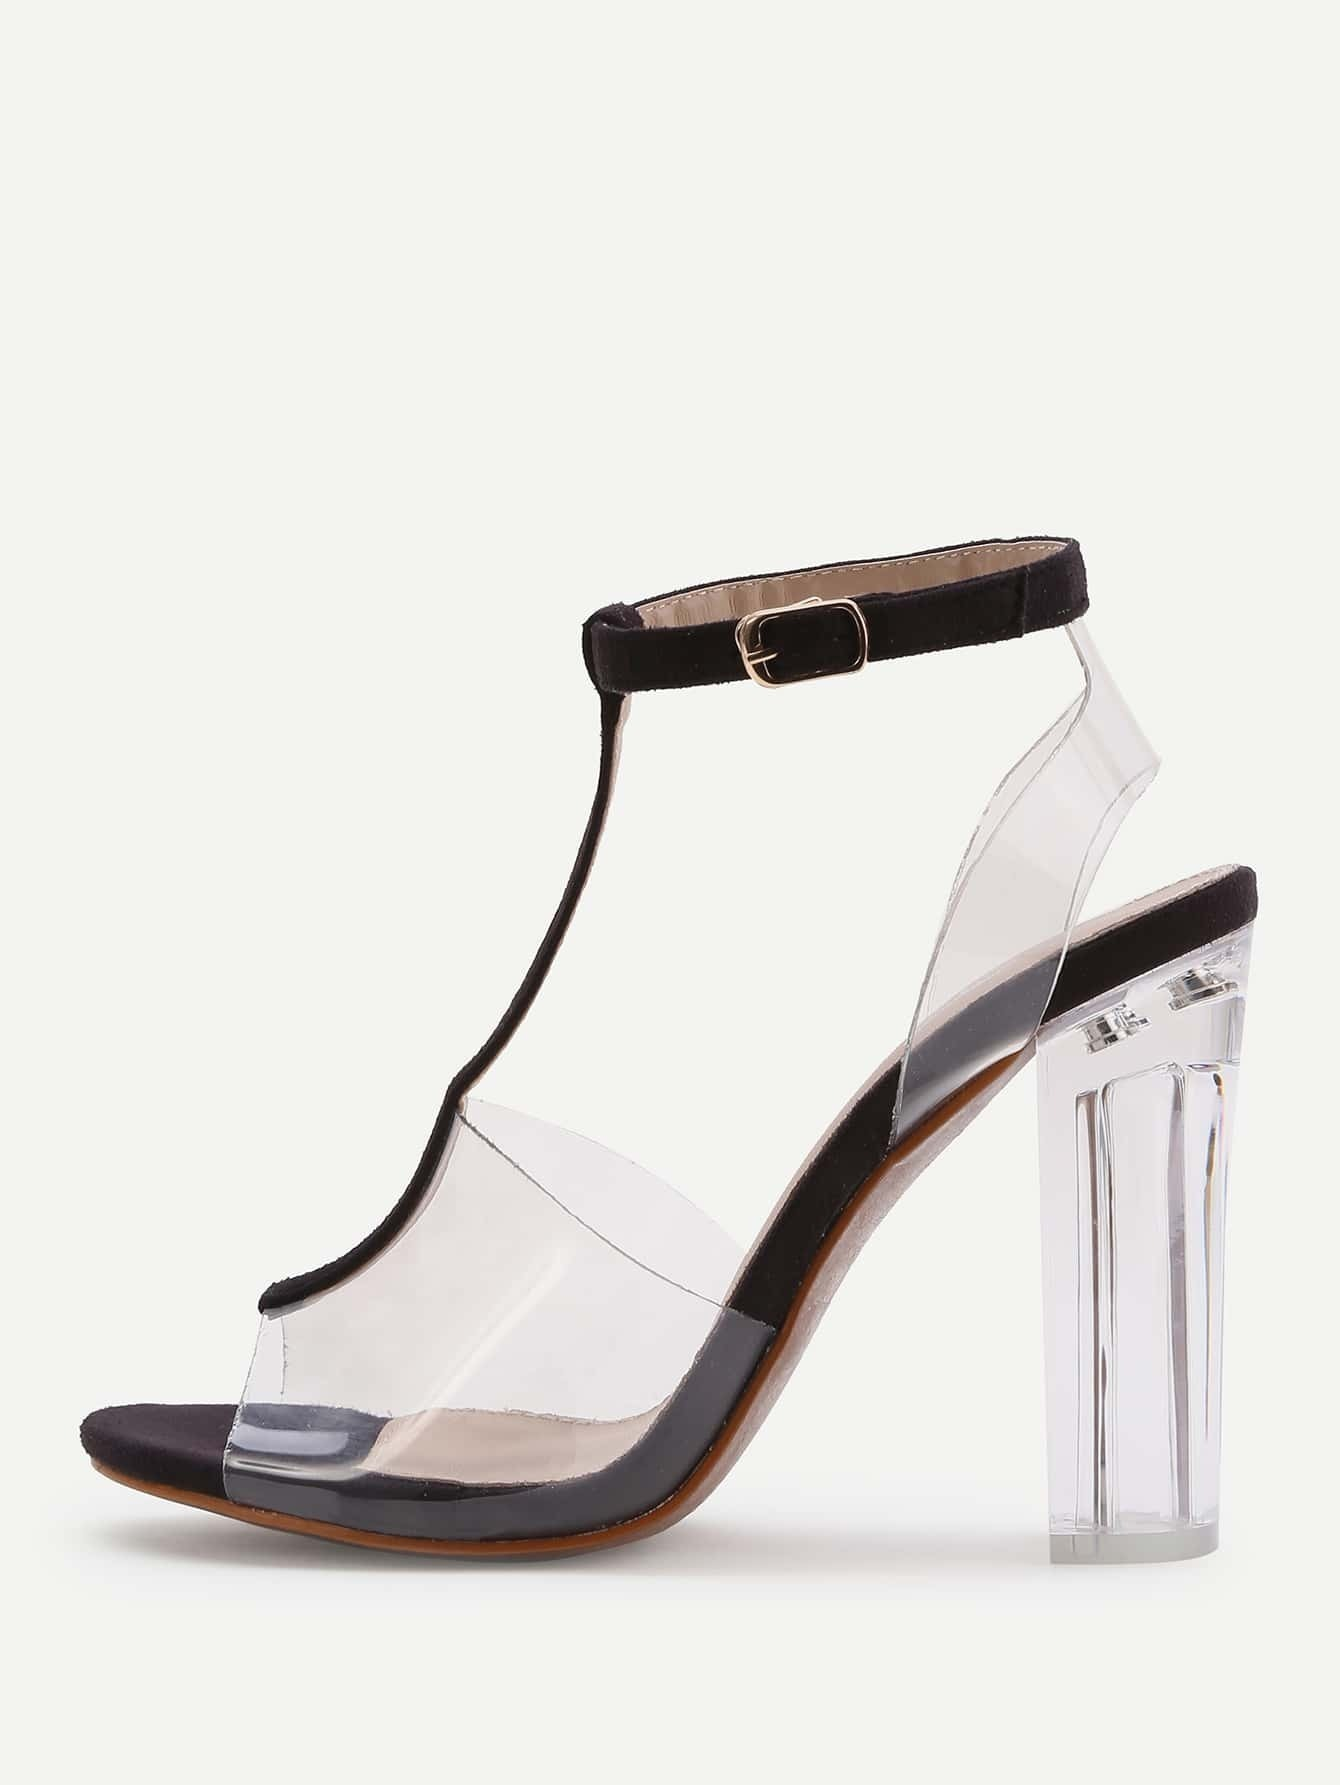 5777bc71f477 Contrast Ankle Strap Peep Toe Clear Chunky Heels EmmaCloth-Women ...